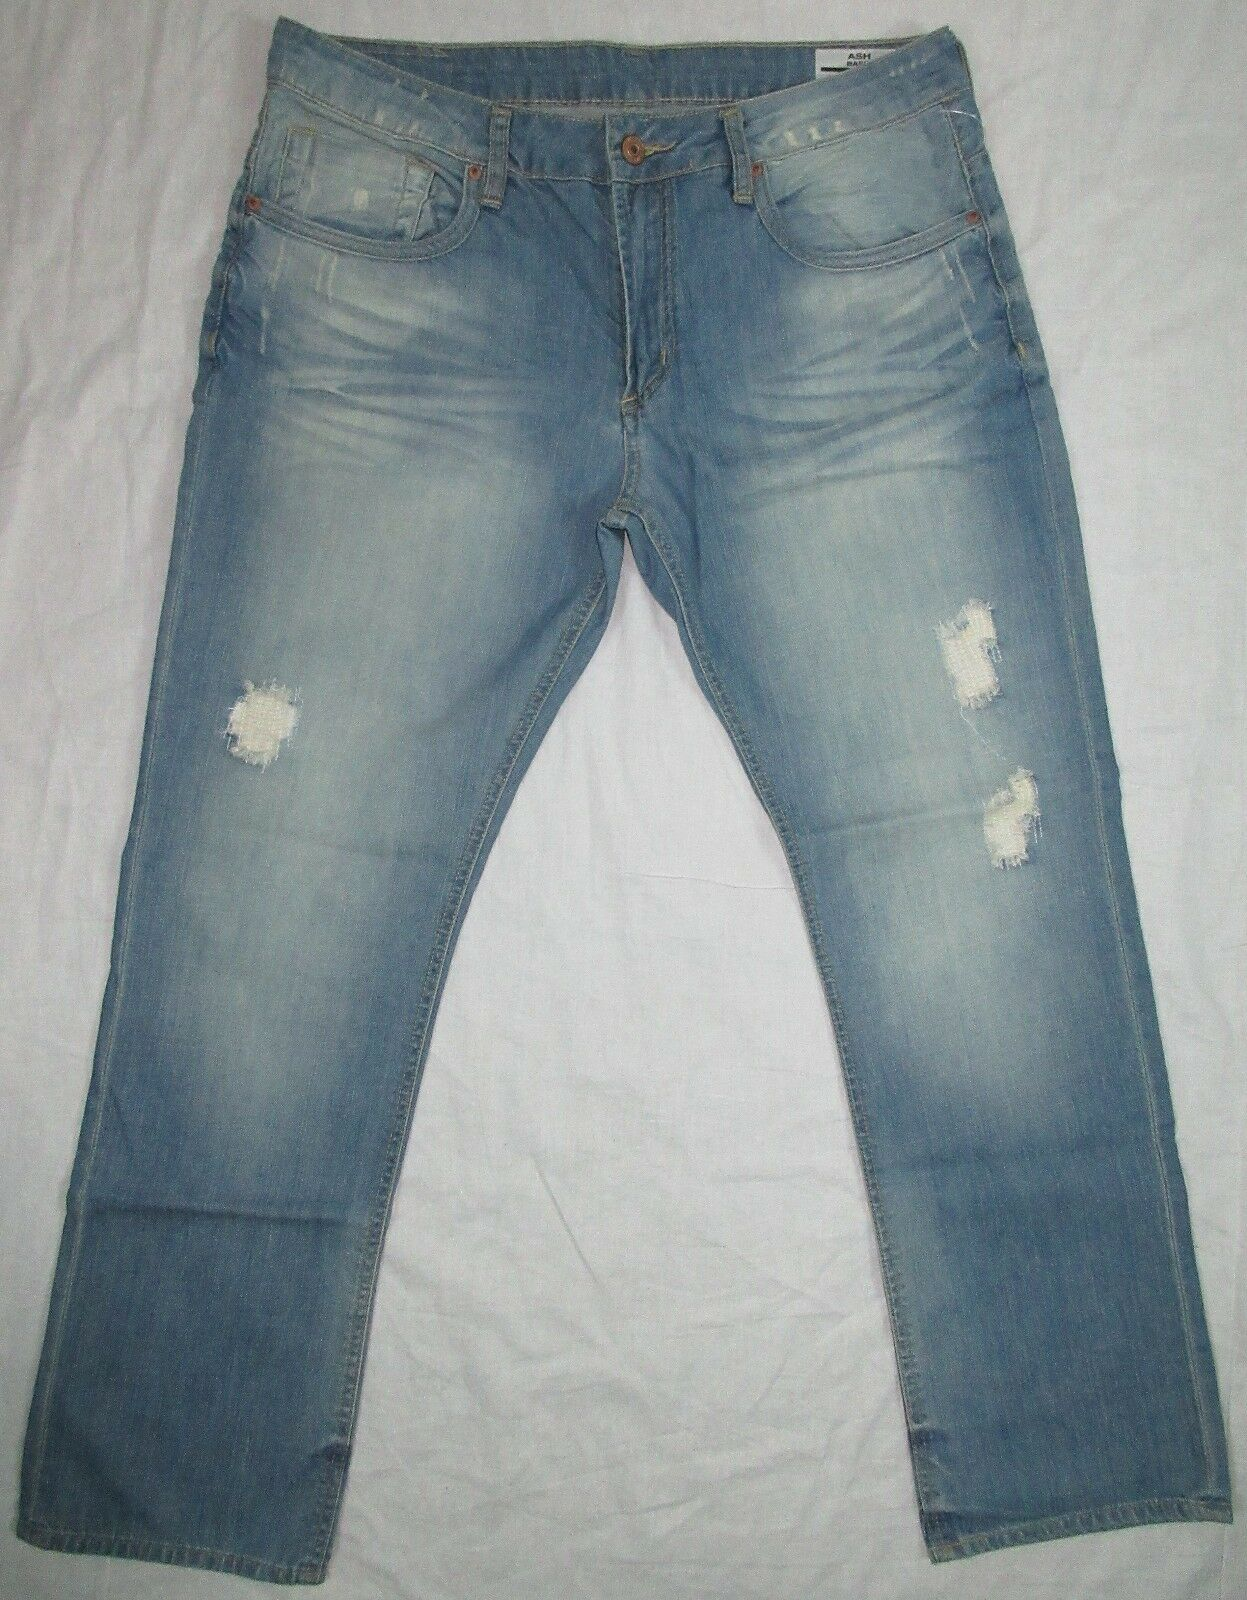 BUFFALO DAVID BITTON ASH BASIC SKINNY JEANS SIZE 36